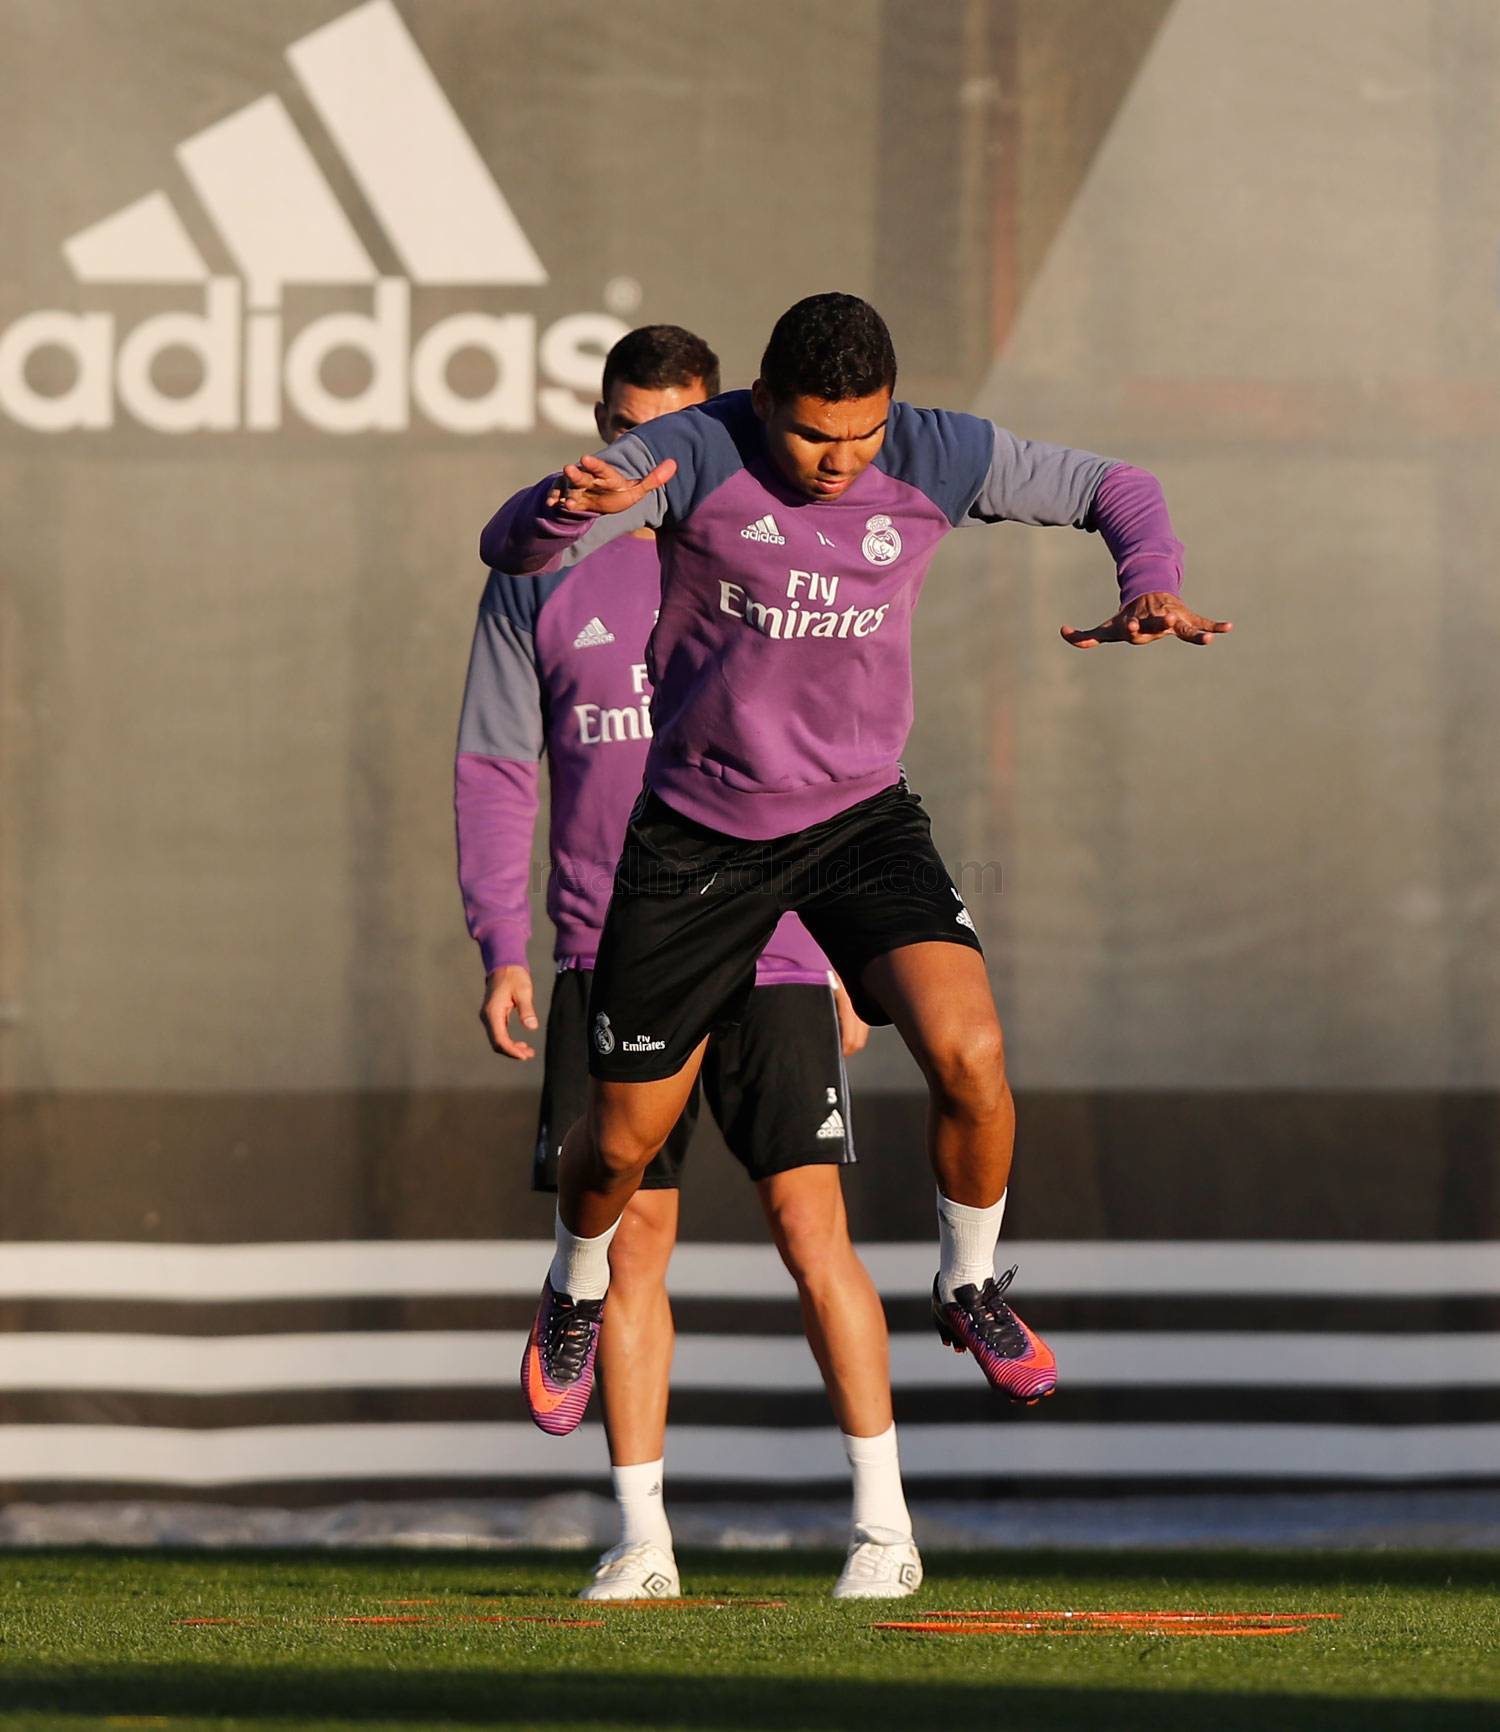 Real Madrid - Entrenamiento del Real Madrid - 15-11-2016